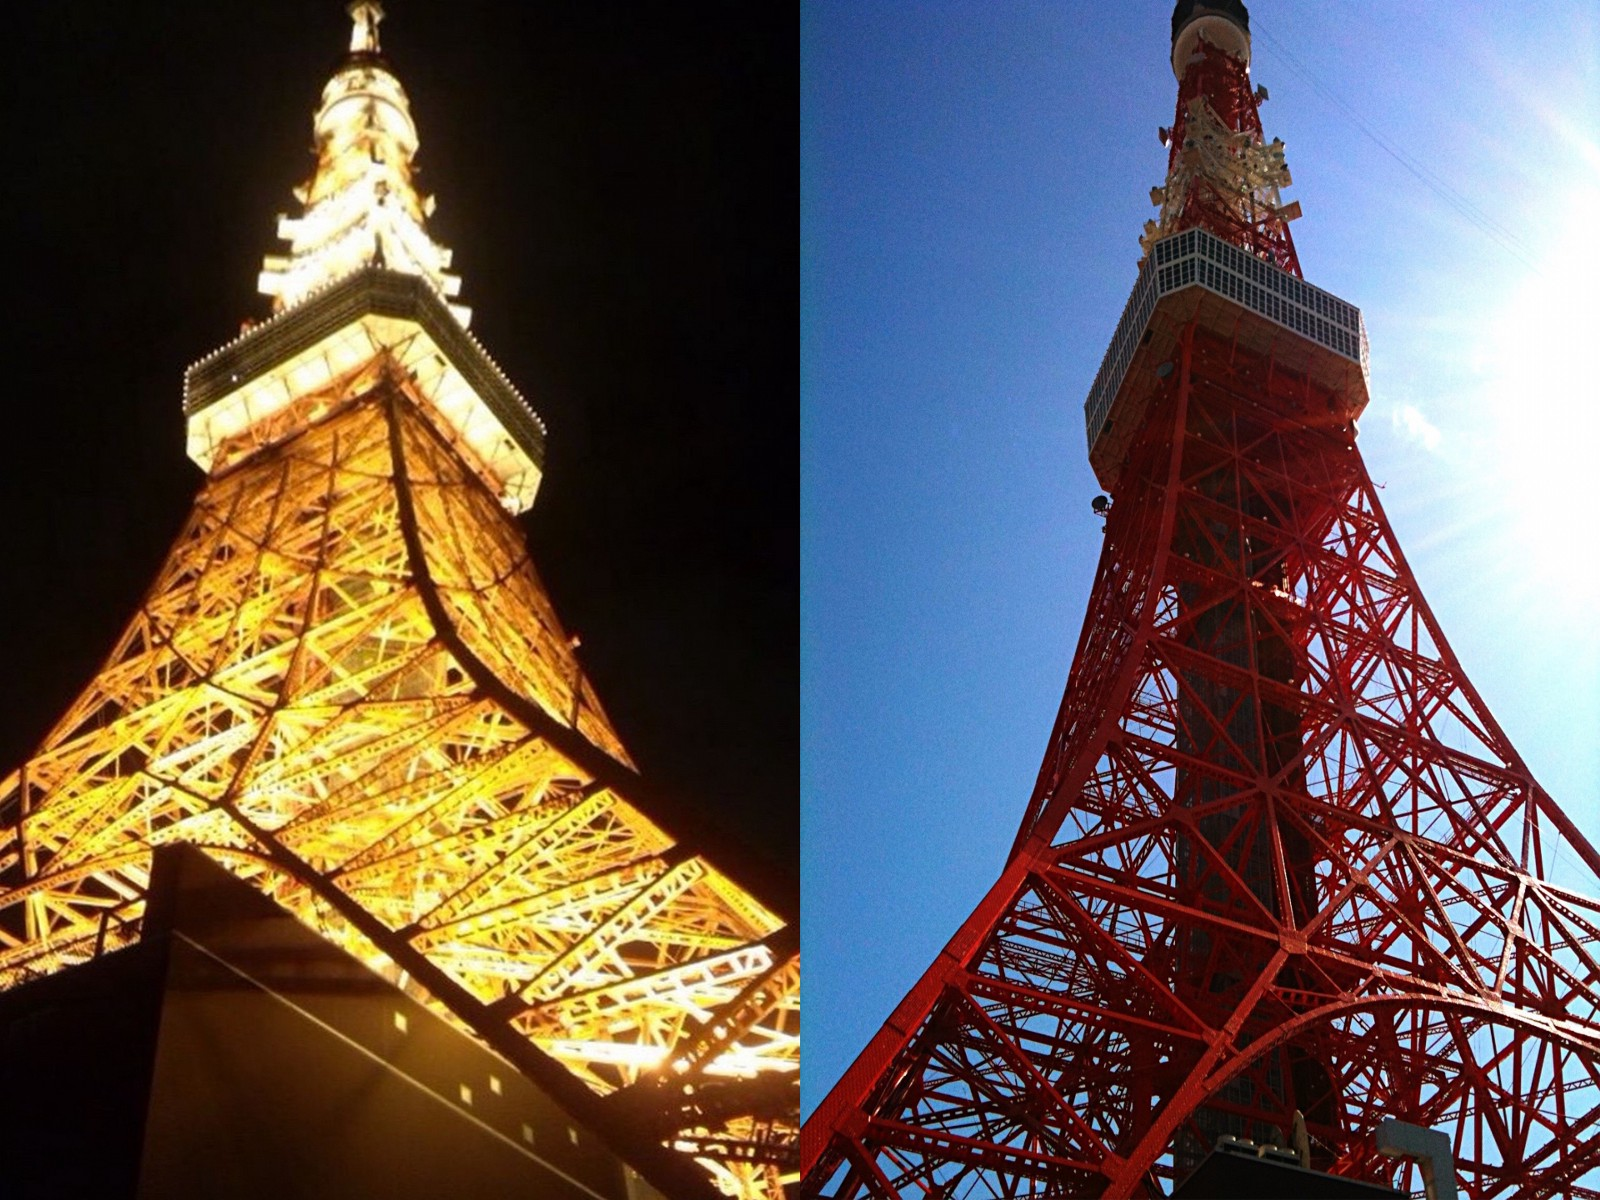 Tokyo Tower in day and night